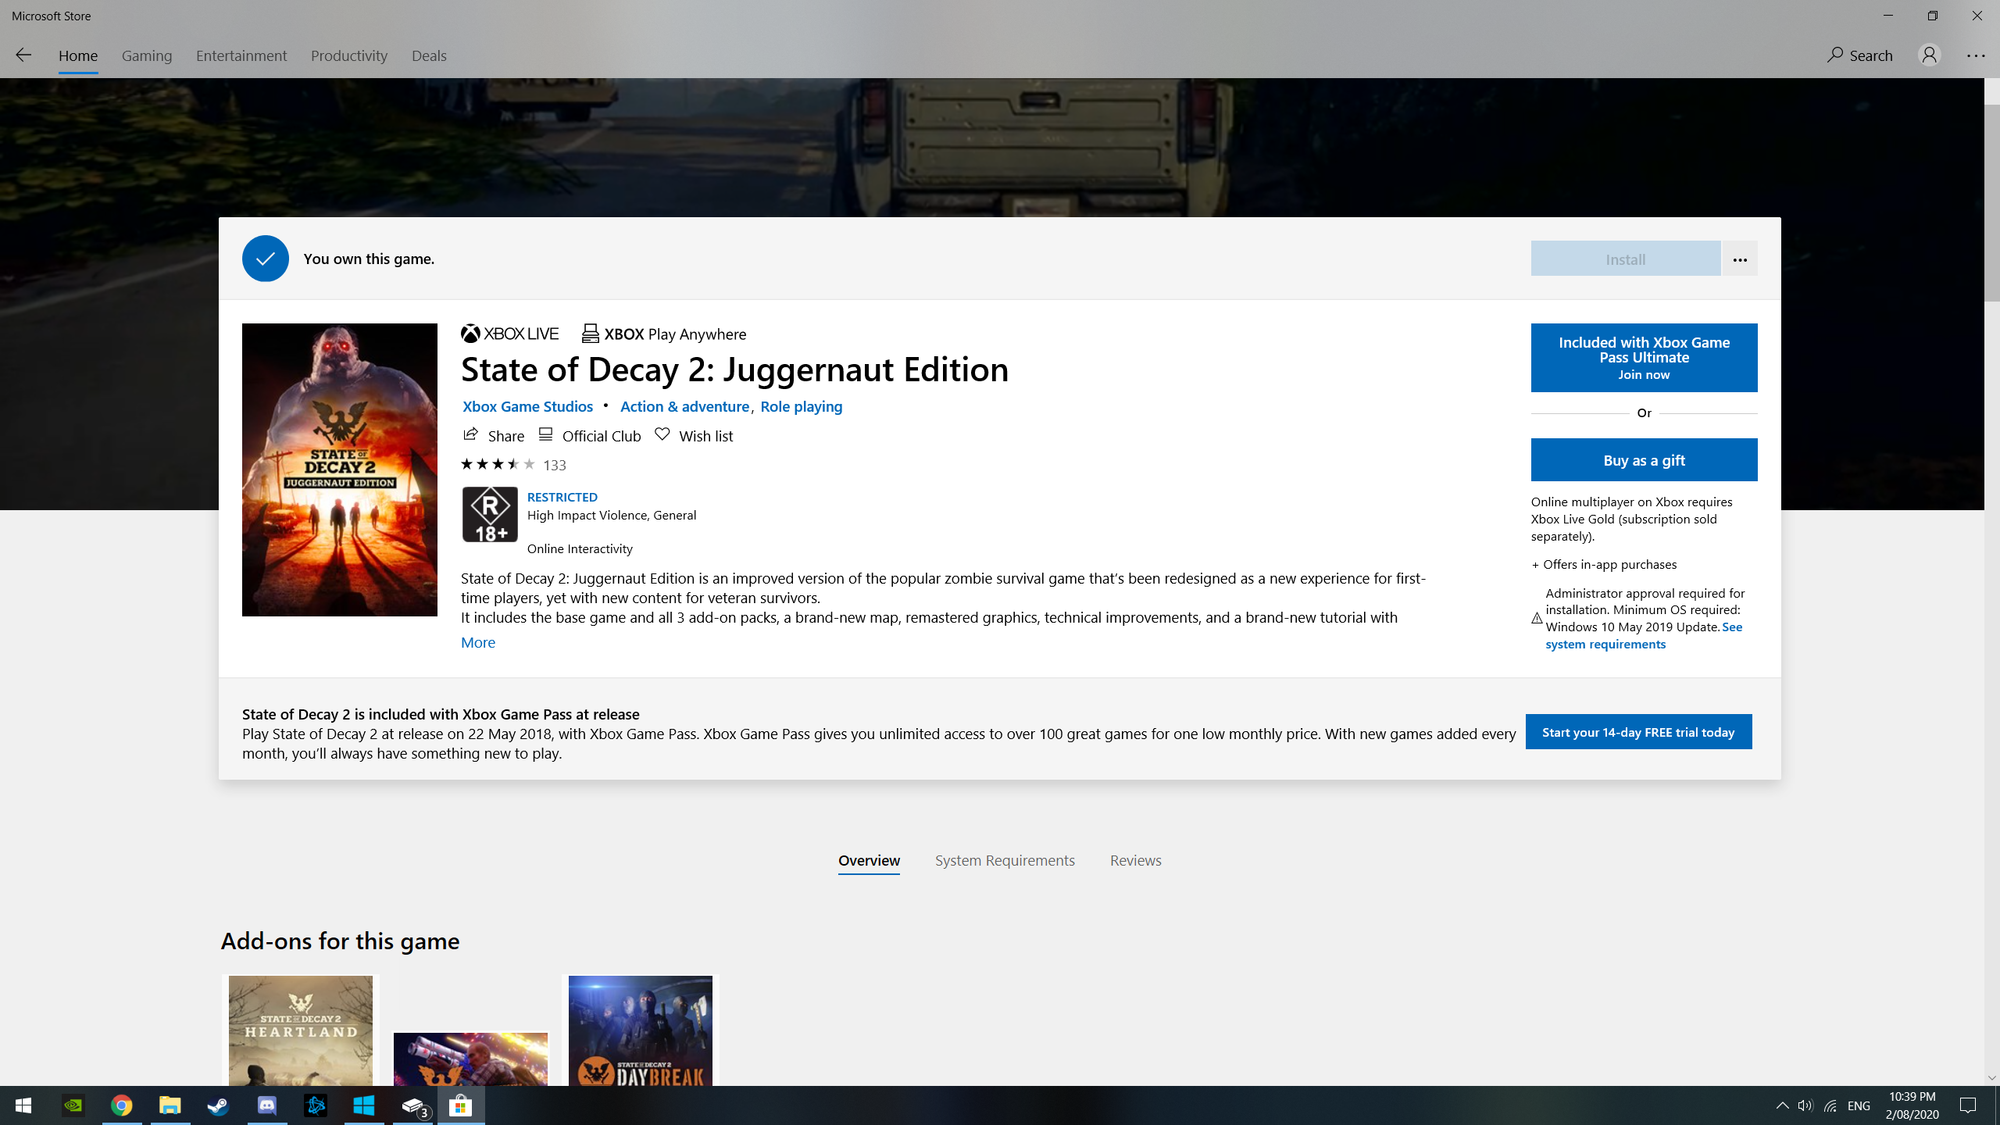 can't install state of decay 2 juggernaut edition a7e49509-8926-418c-a605-9b7ae1aad1b9?upload=true.png